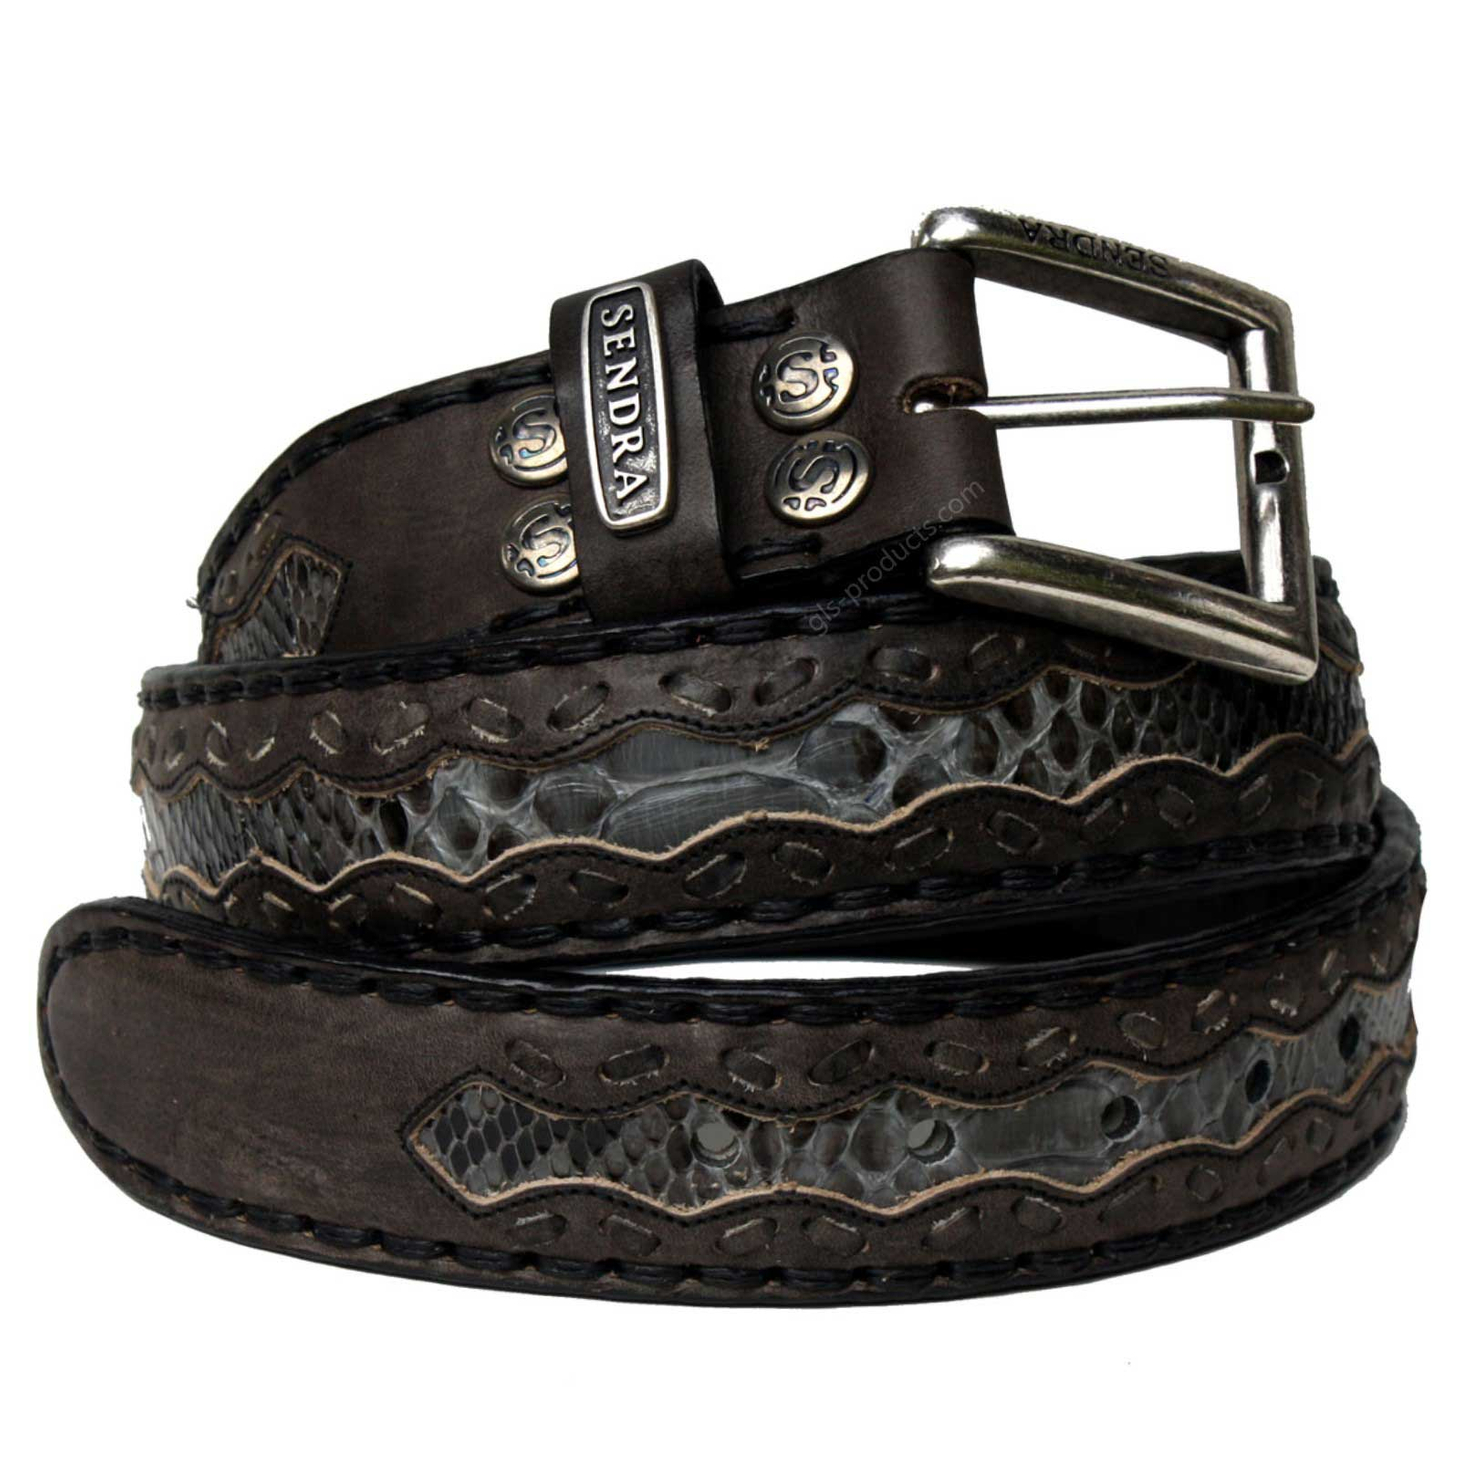 Sendra Leather Belt 8347 – Picture 1